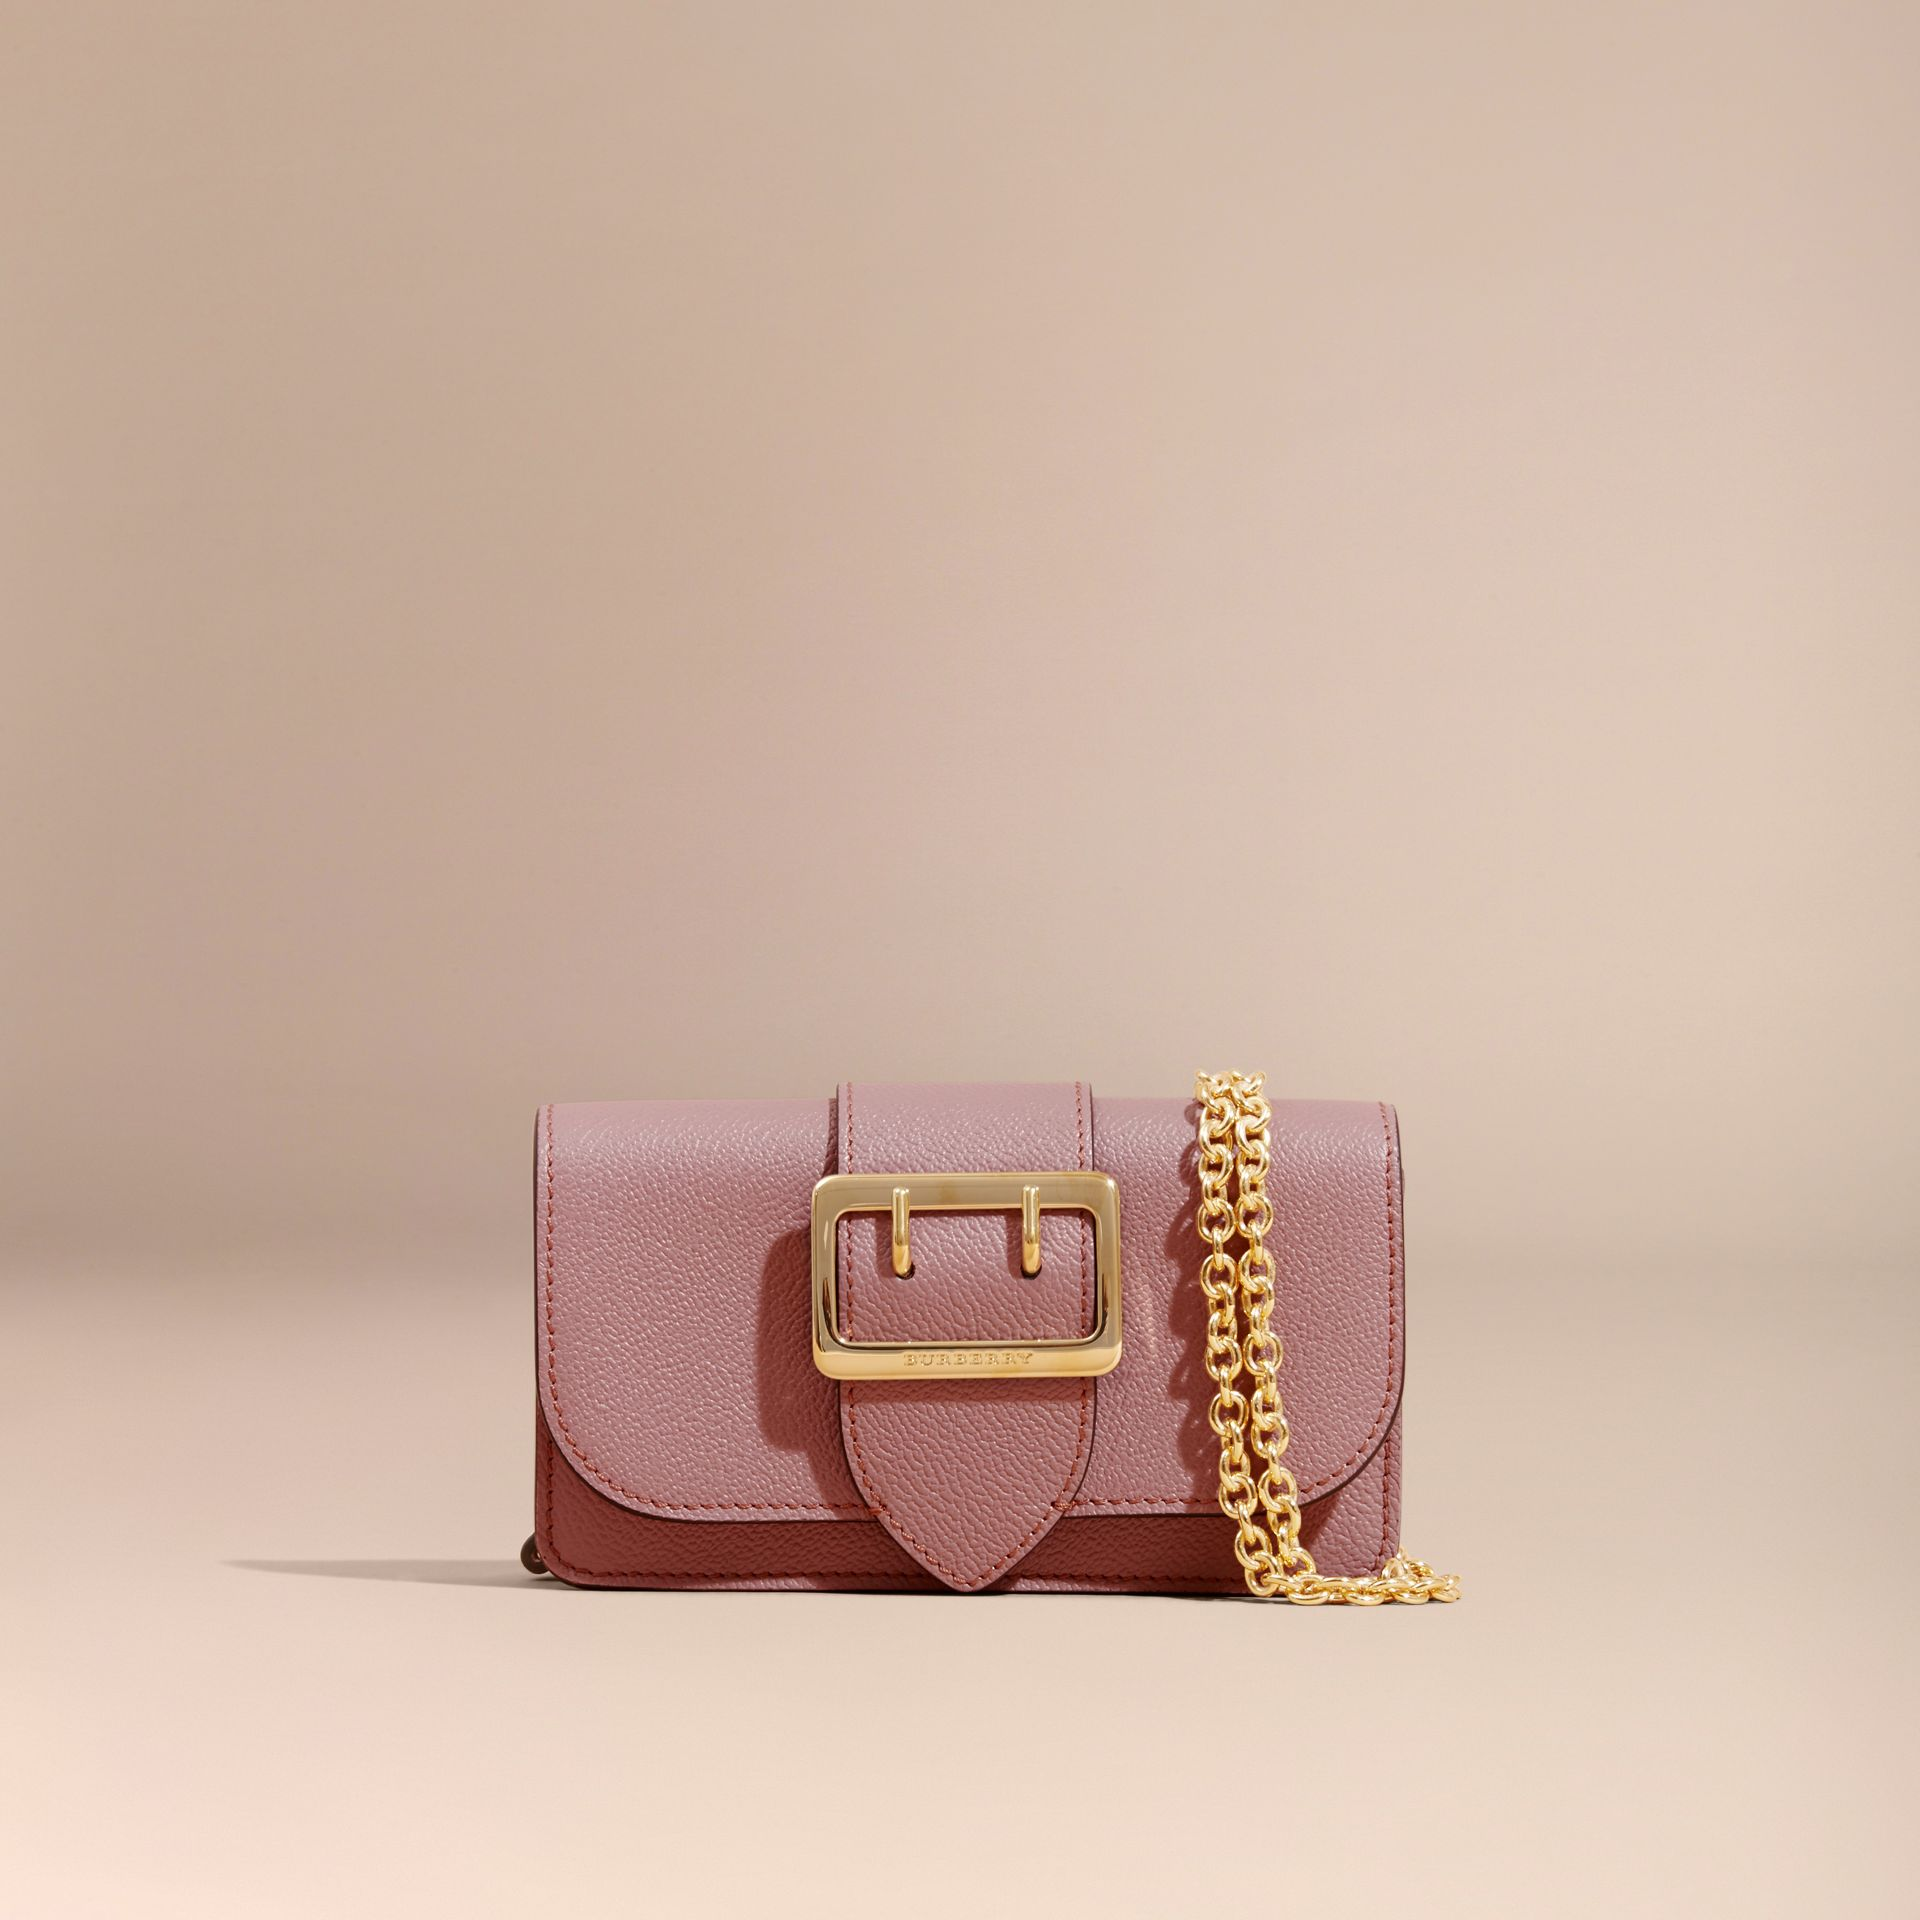 The Mini Buckle Bag in Grainy Leather in Dusty Pink - Women | Burberry Singapore - gallery image 9